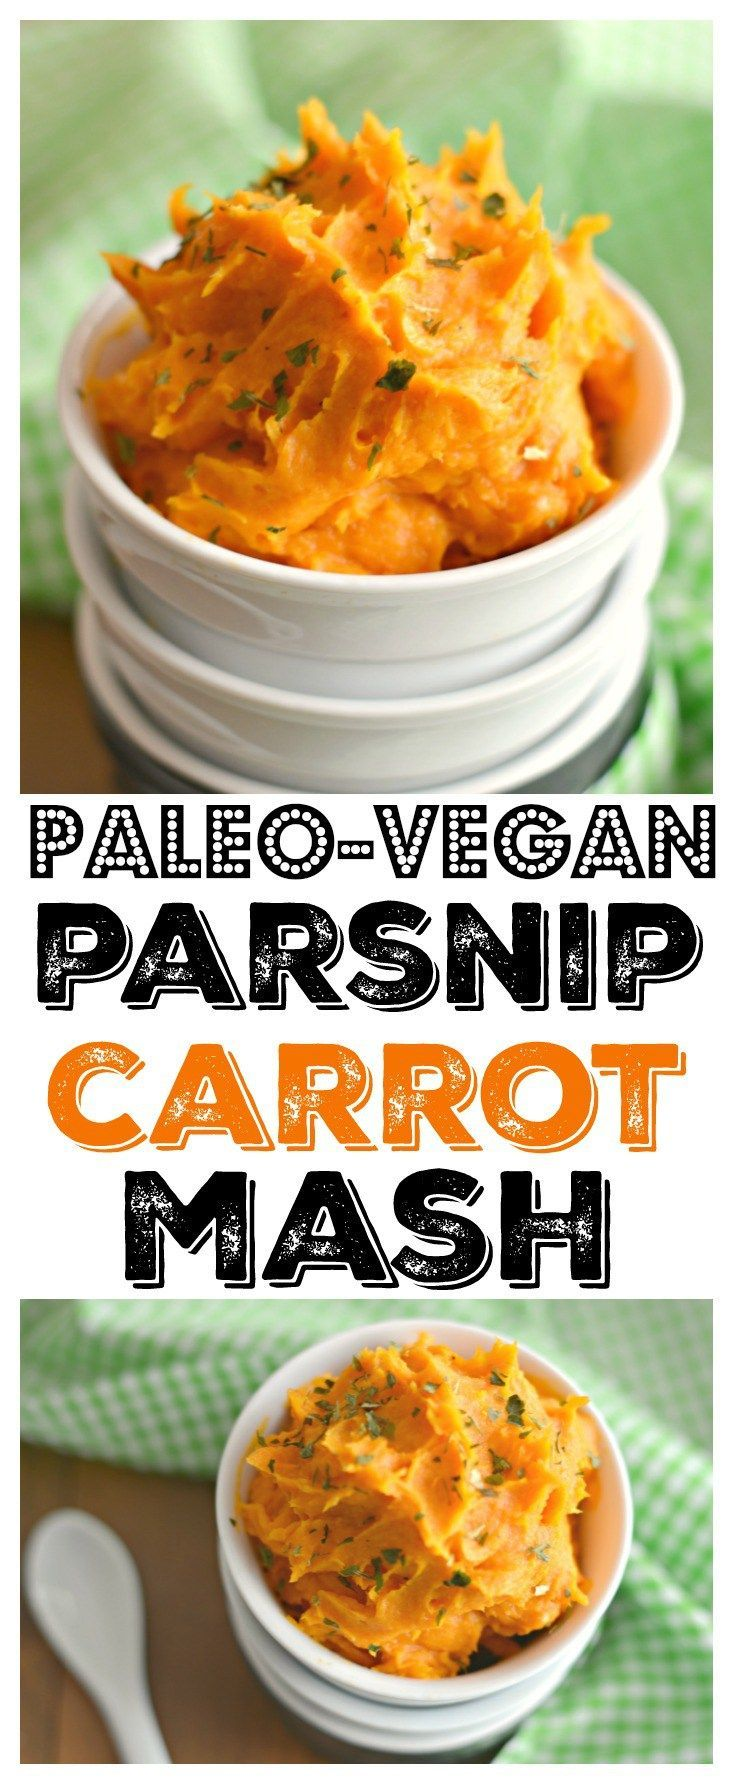 This Parsnip Carrot Mash is a healthy Paleo & Vegan friendly twist on traditional mashed potatoes. A delicious and easy to make side perfect to pair with any protein! Paleo + Vegan + Gluten Free + Low Calorie